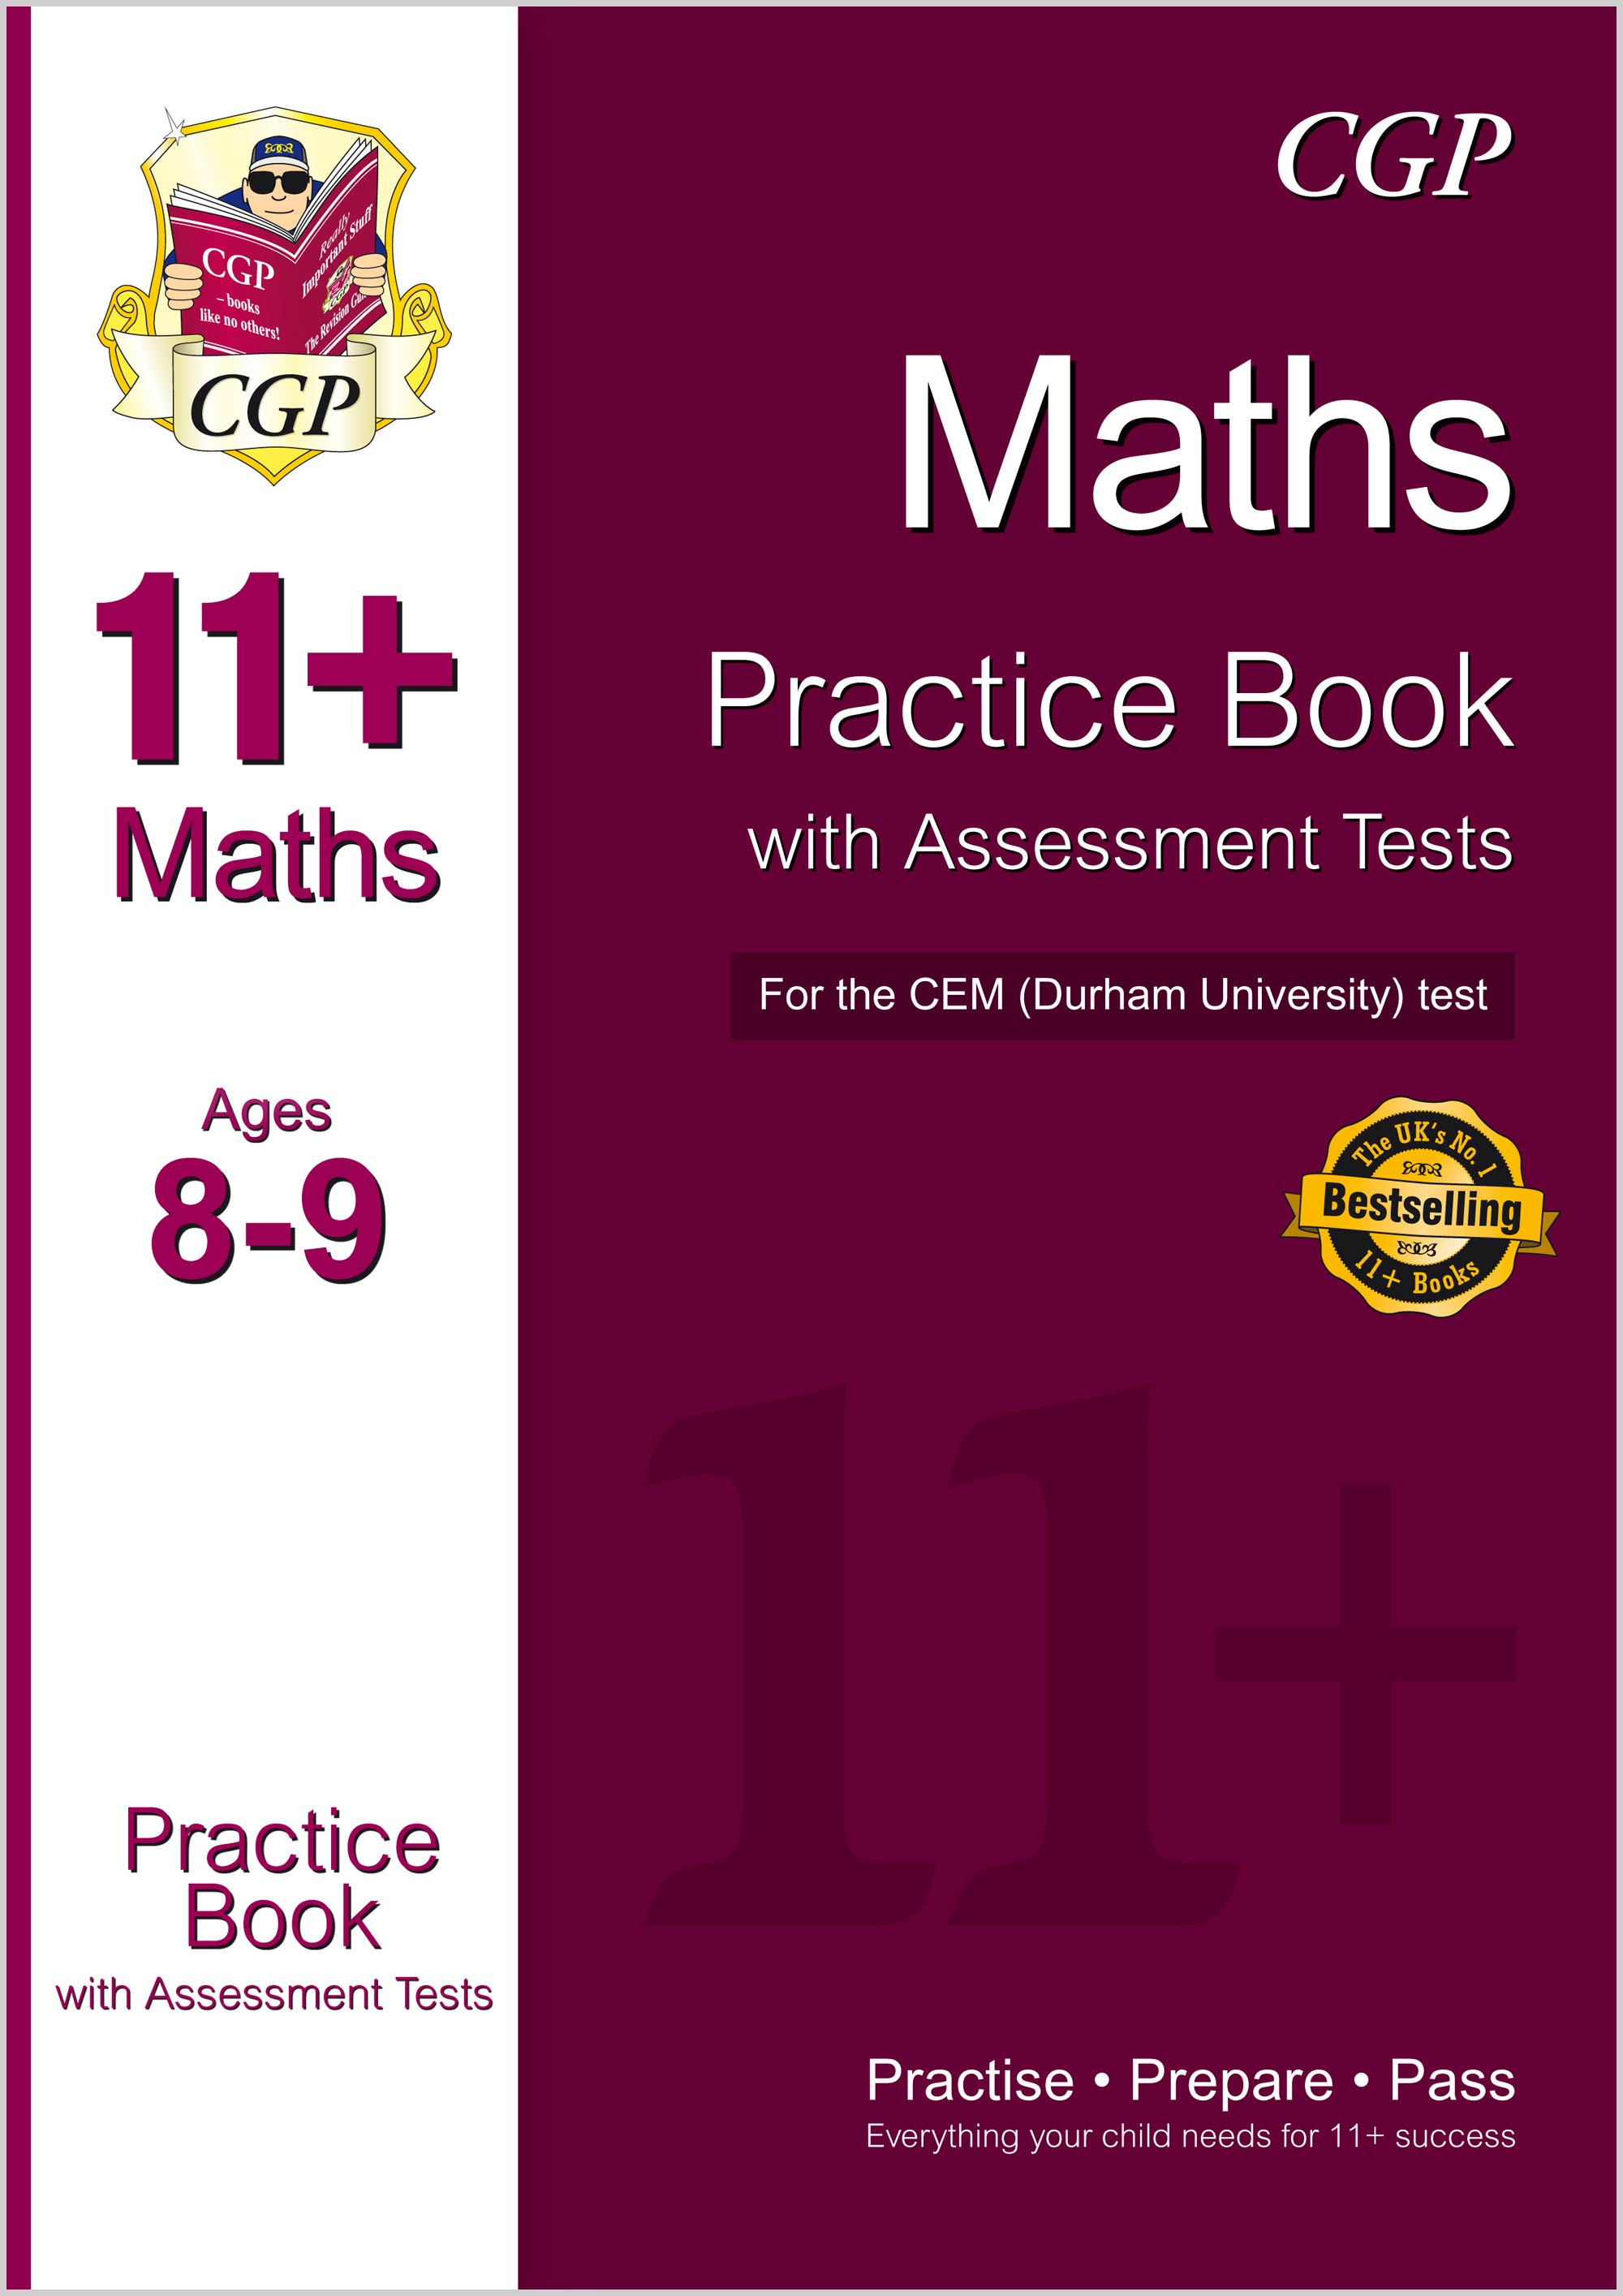 M4QDE1 - 11+ Maths Practice Book with Assessment Tests (Ages 8-9) for the CEM Test